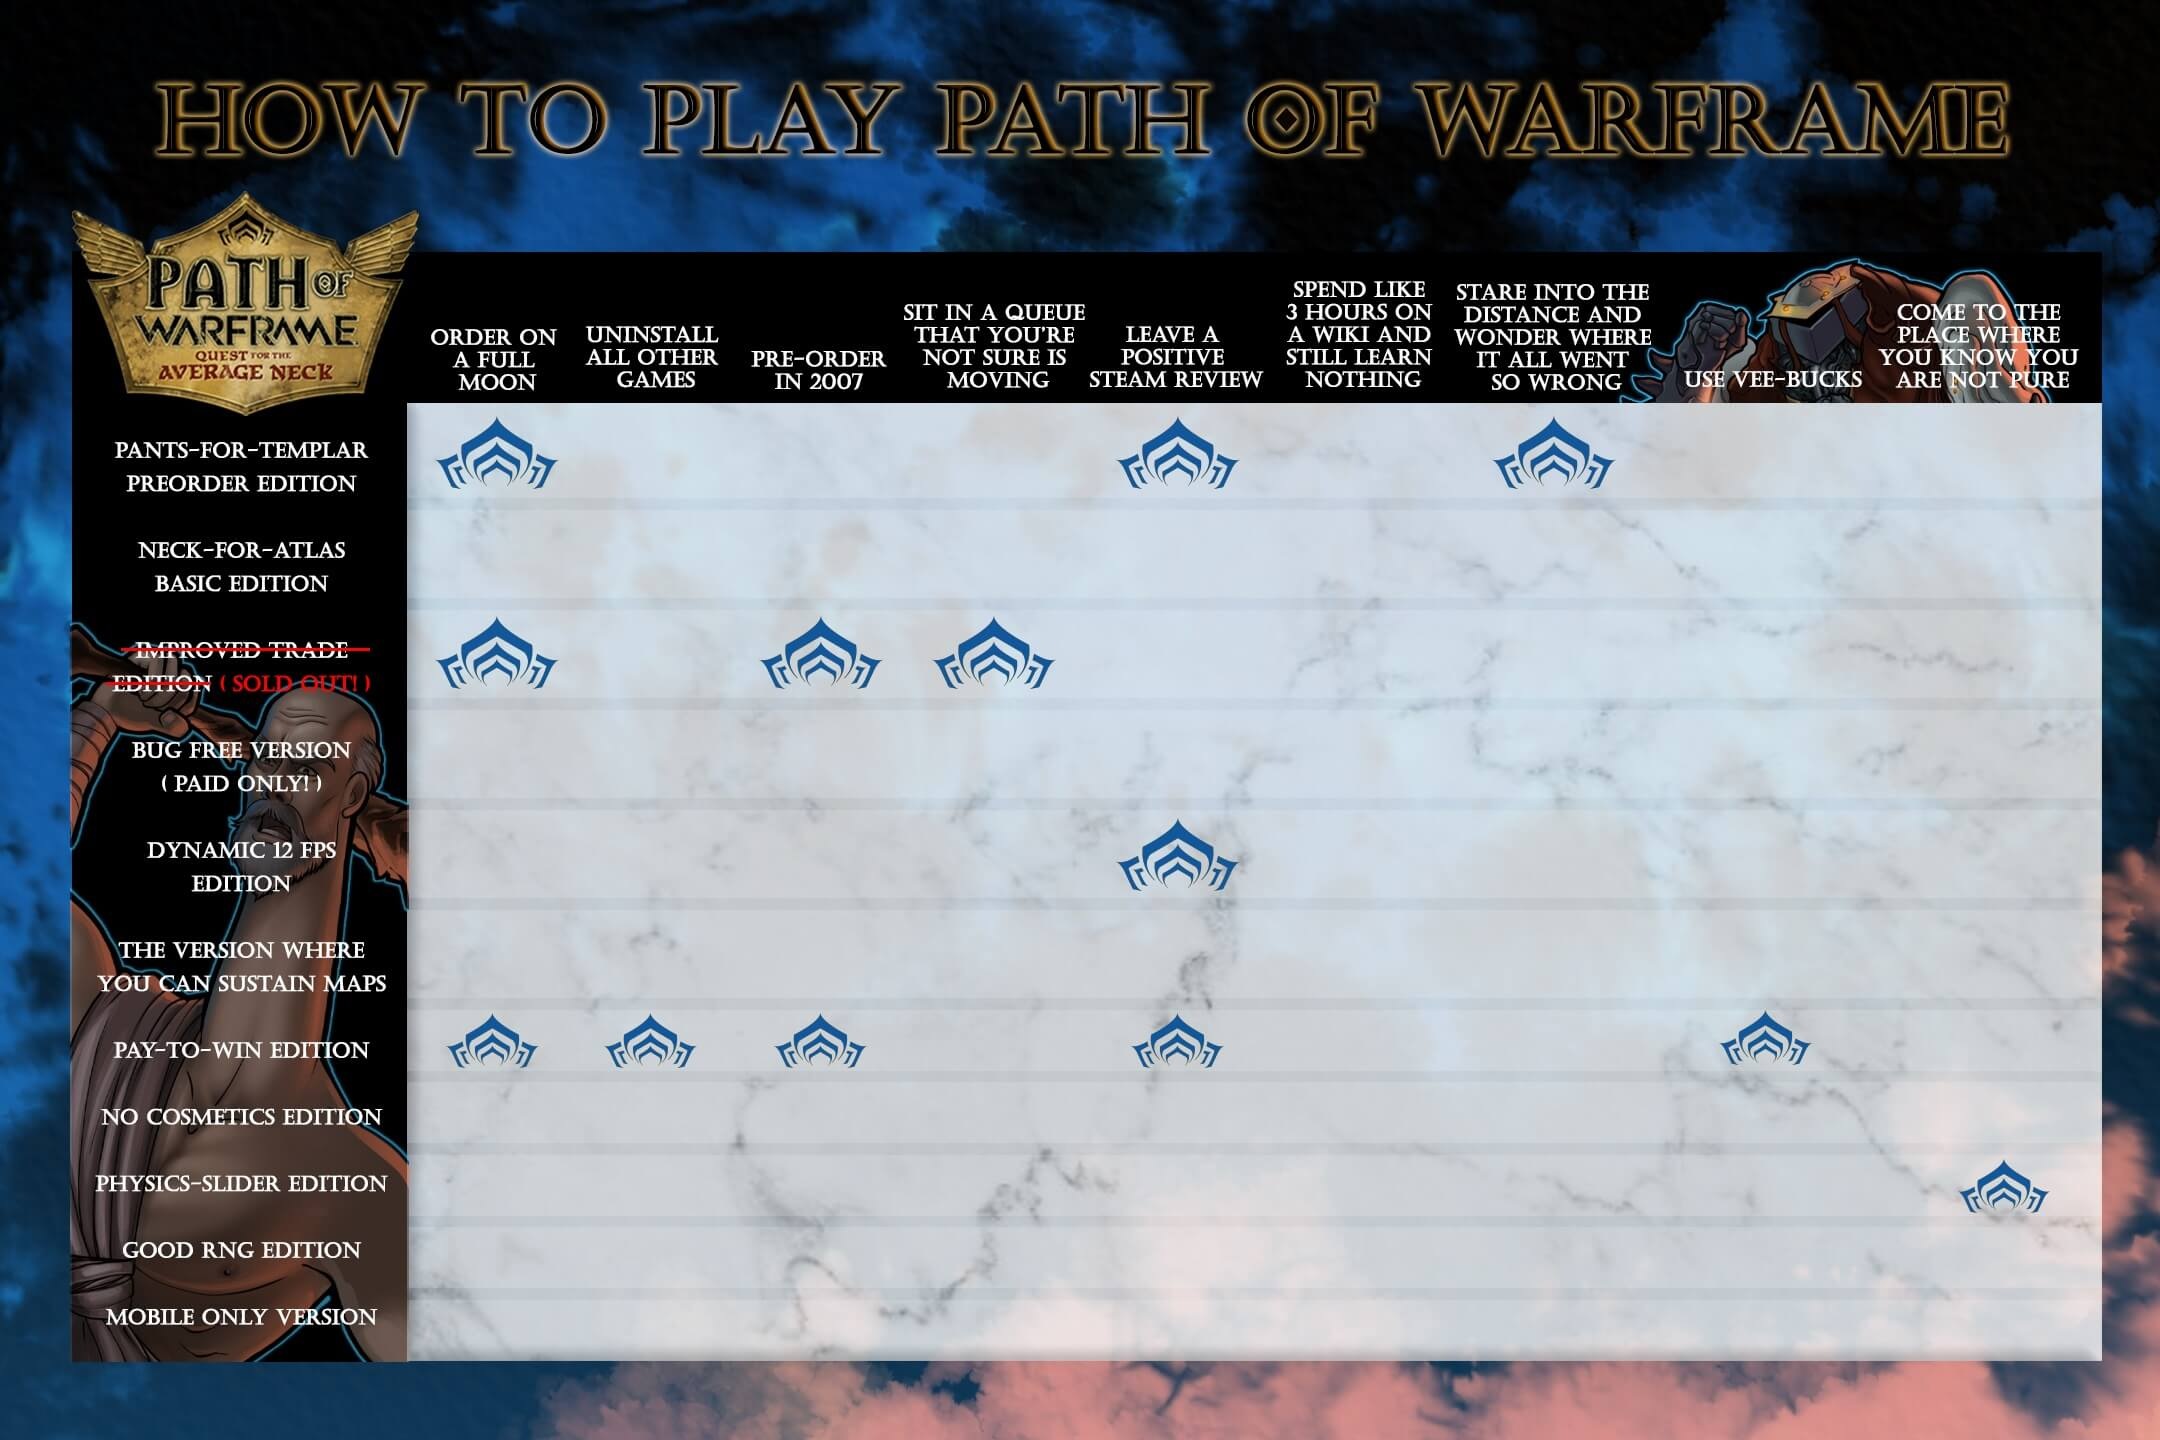 averageneck3 - Path of Warframe: The Quest for the Average Necl